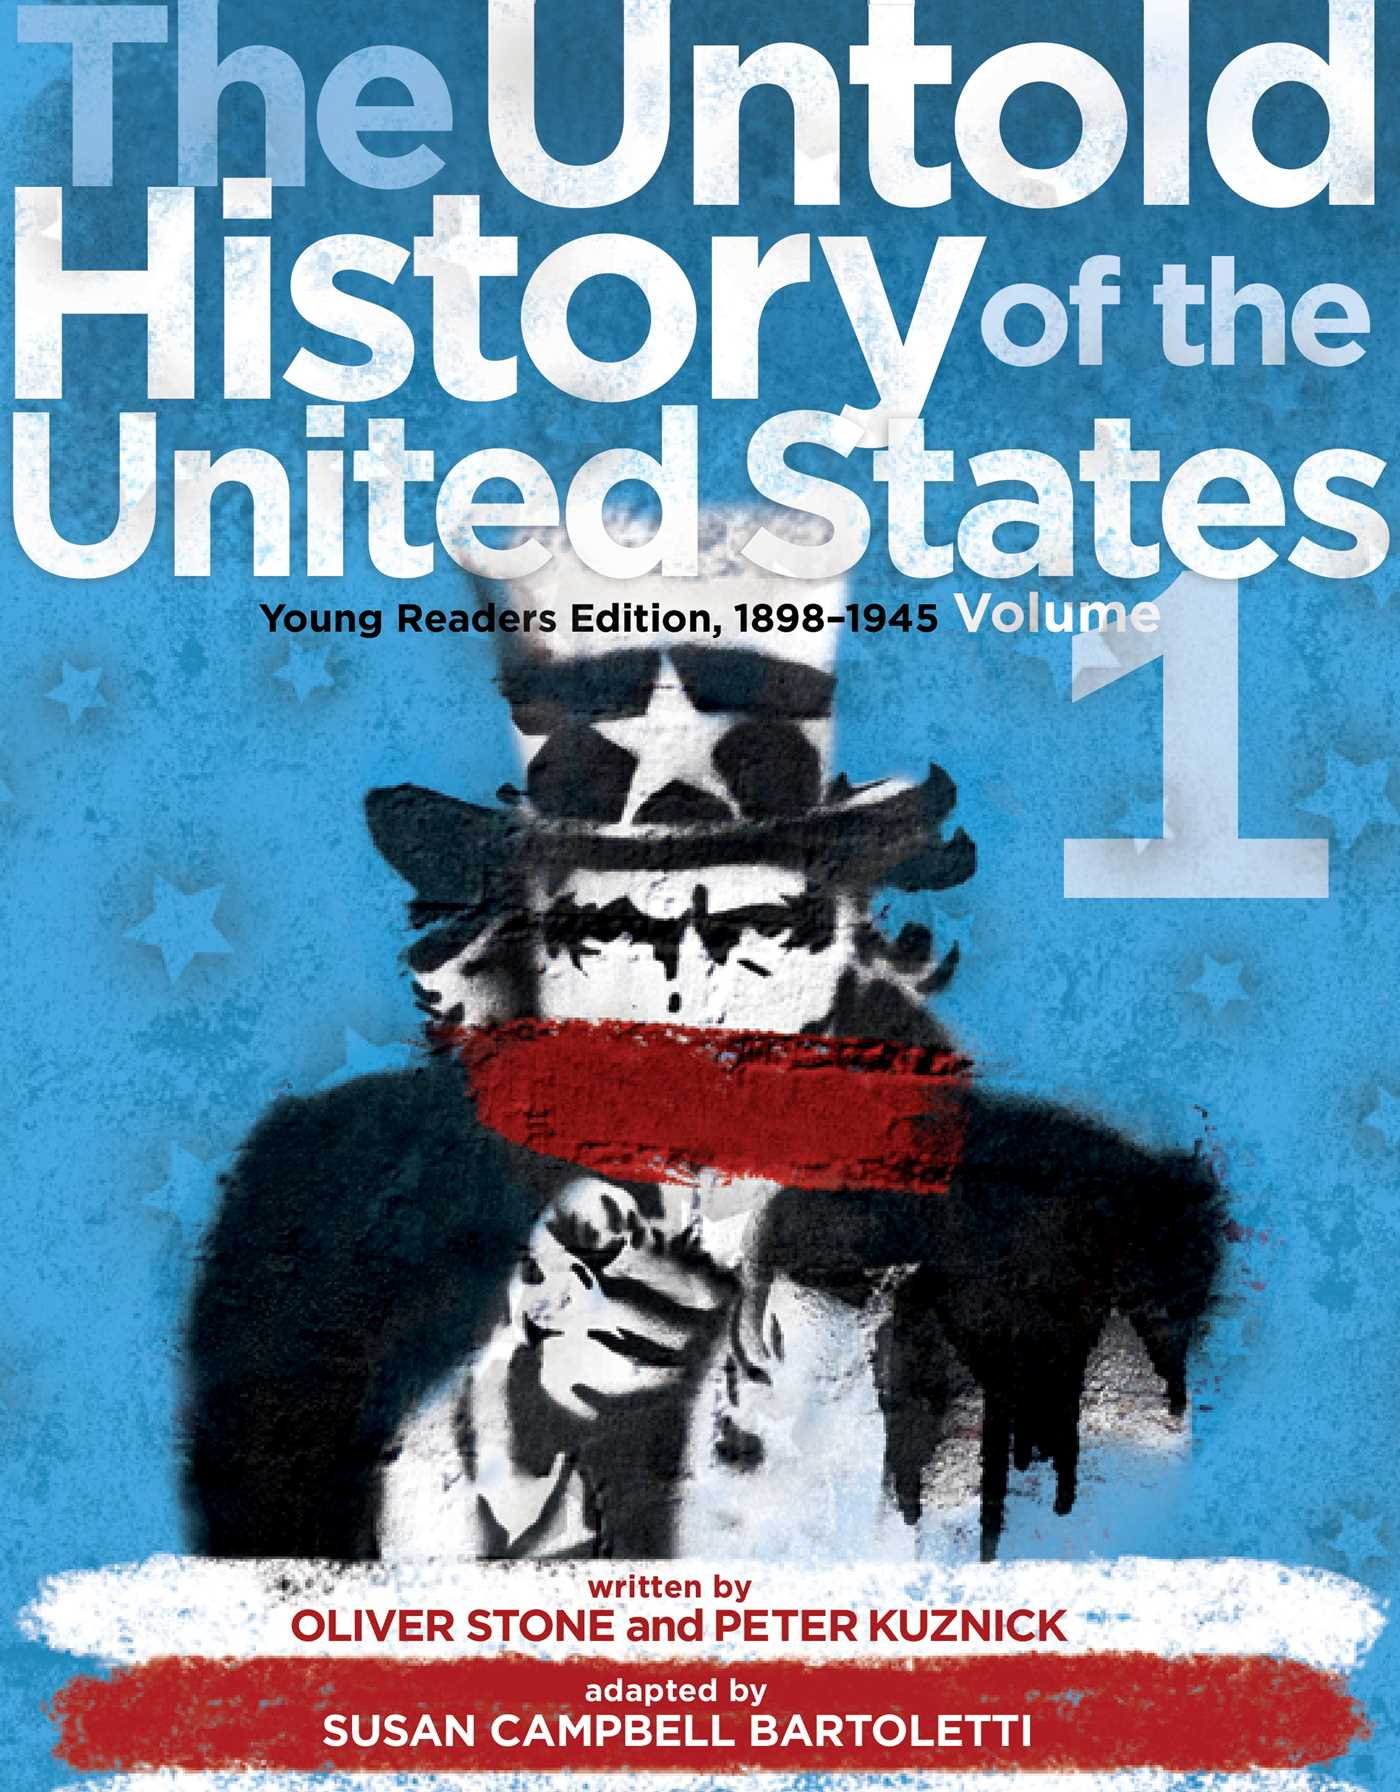 The-untold-history-of-the-united-states-volume-1-9781481421737_hr